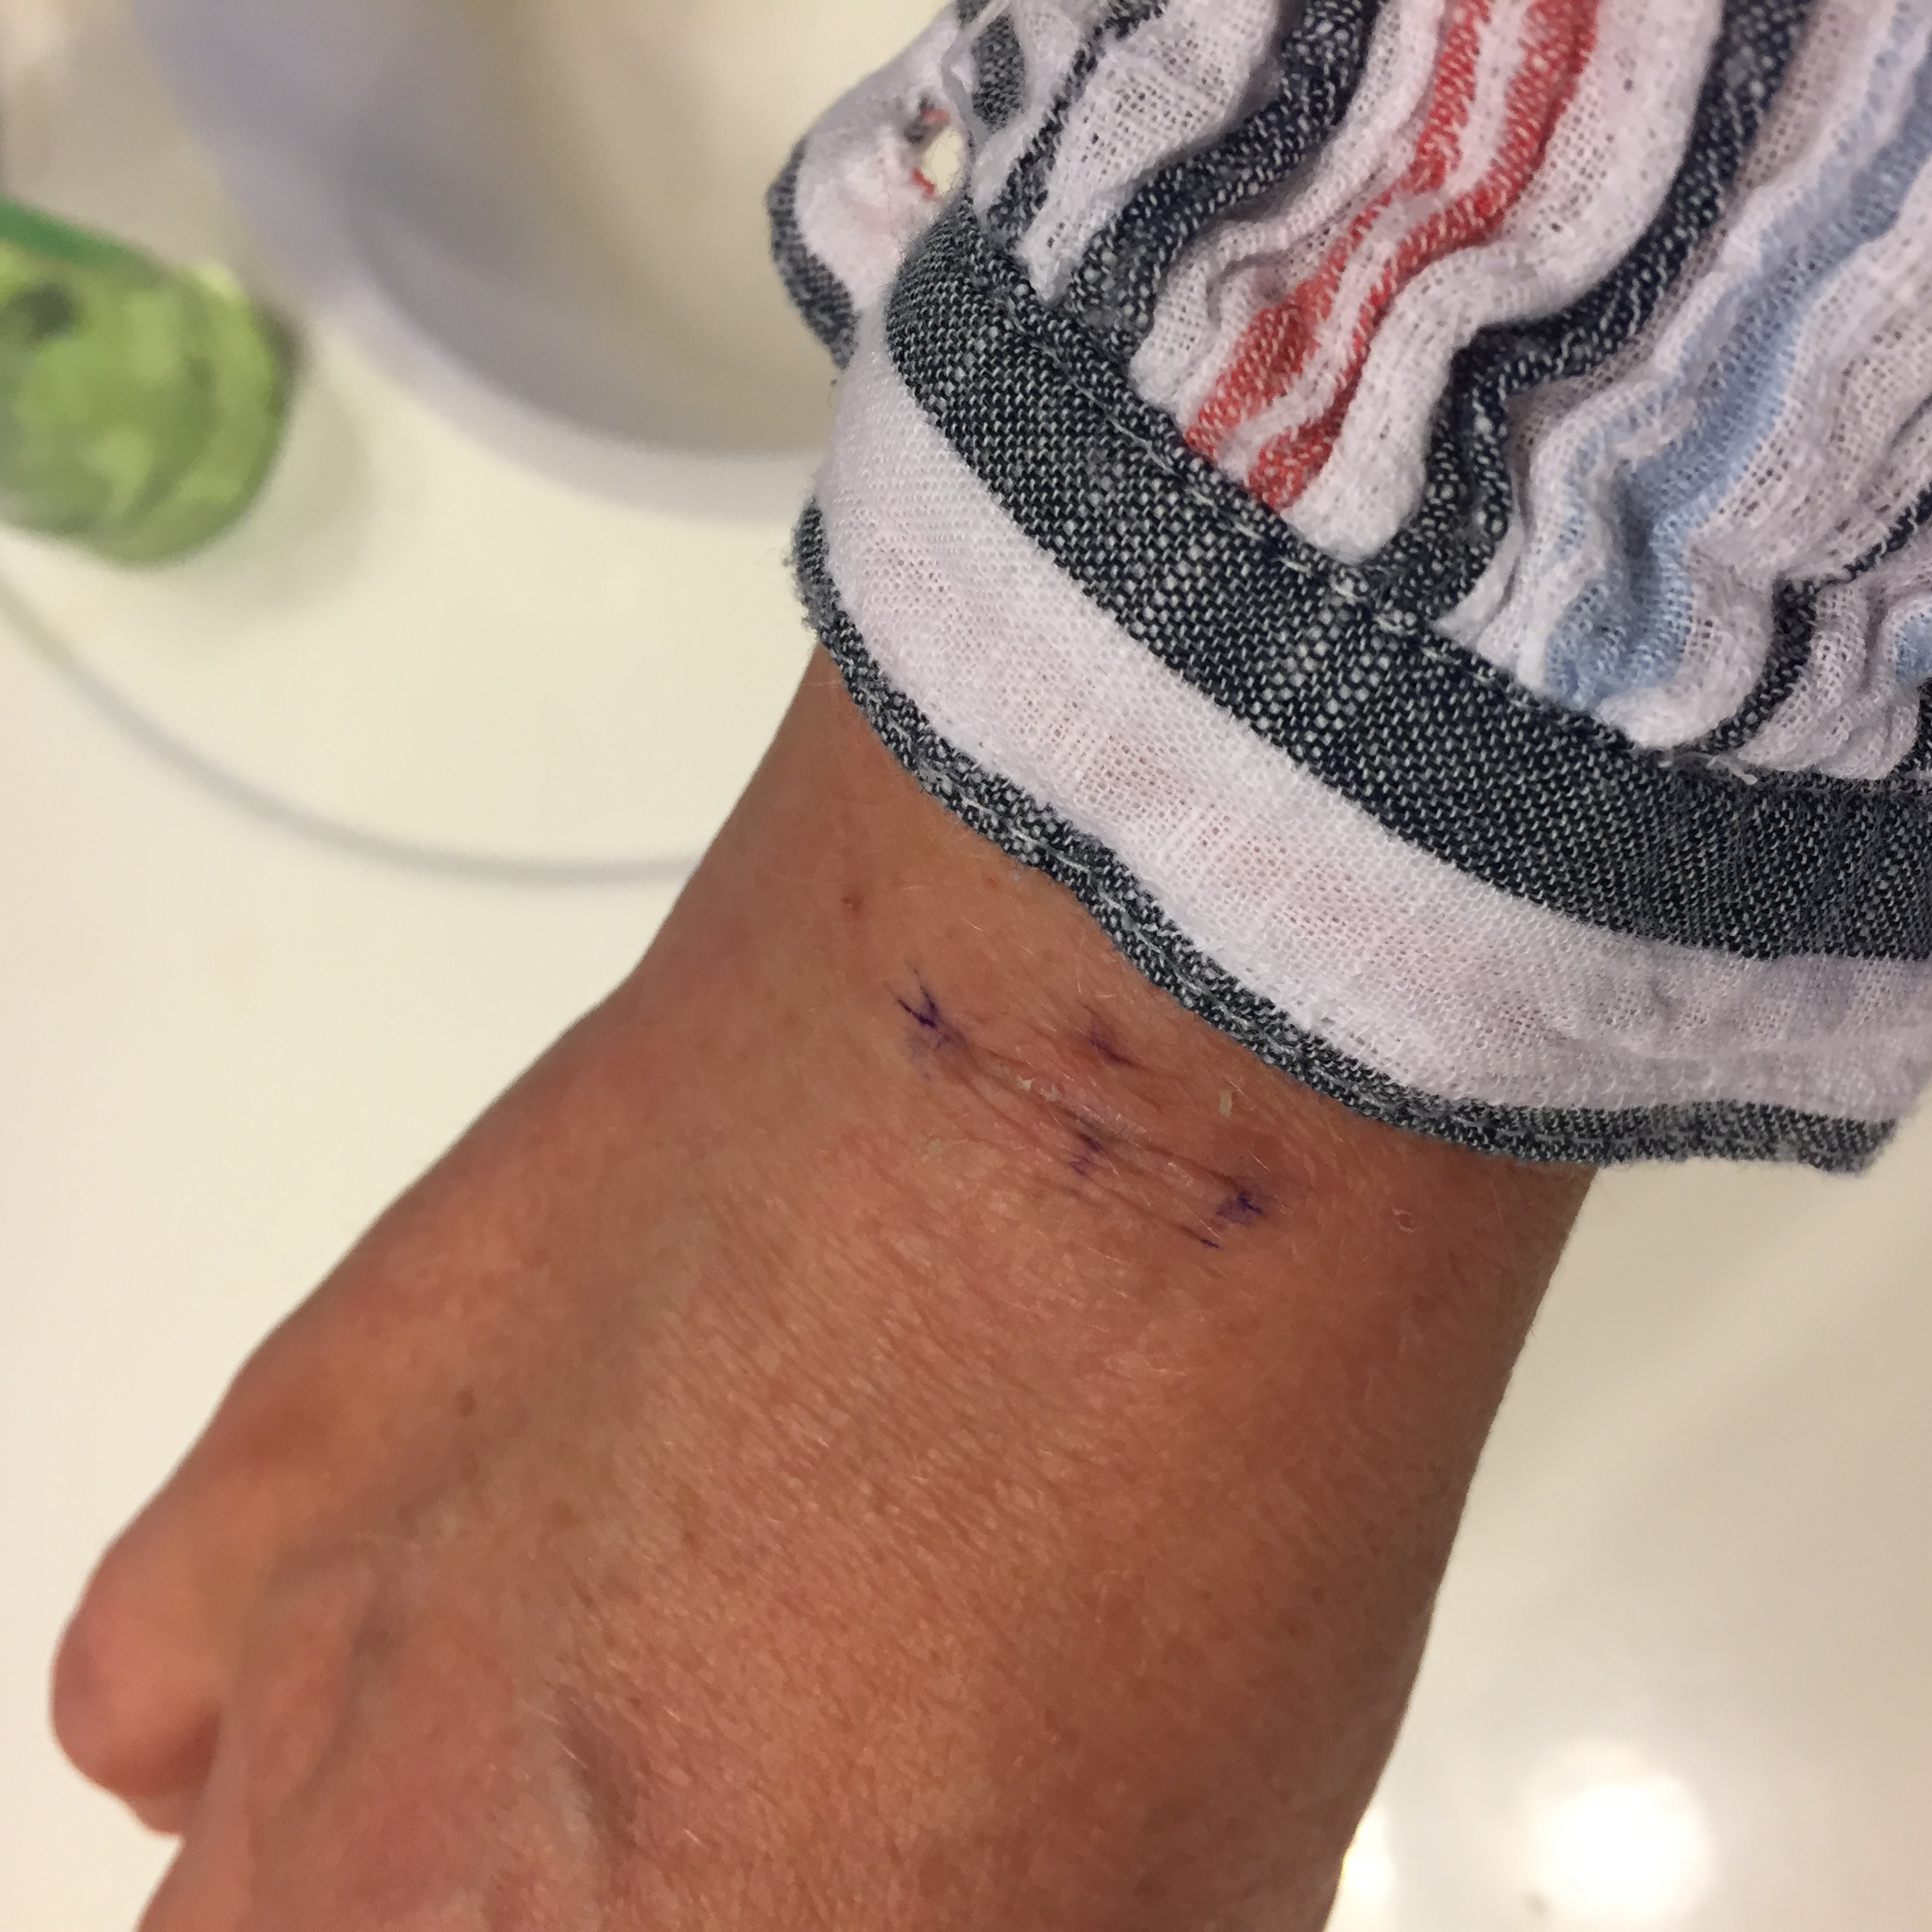 F0007651 4C23 439C A8C2 F90C906FF5A5 Ganglion Cyst Removal / Excision Recovery Pictures